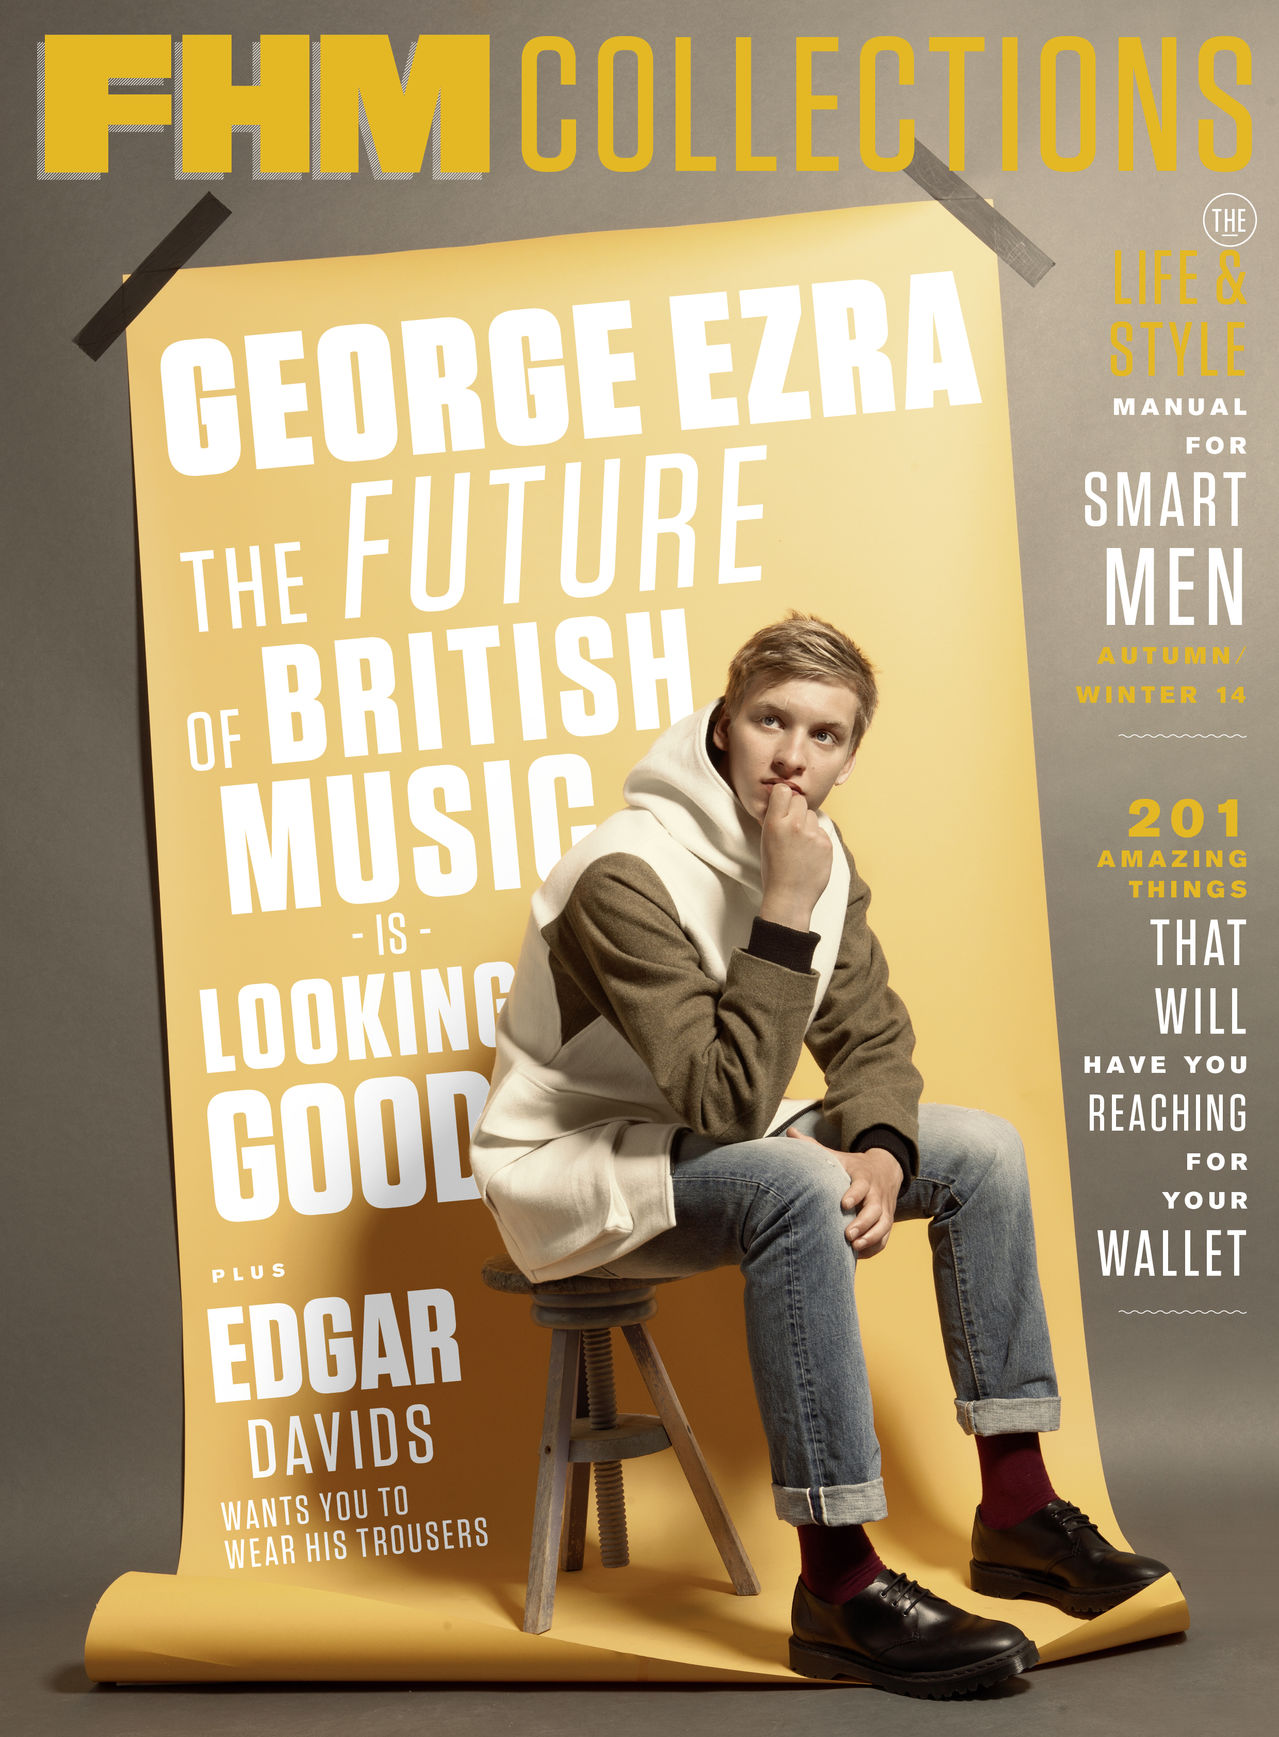 George Ezra Covers FHM Collections Fall/Winter 2014